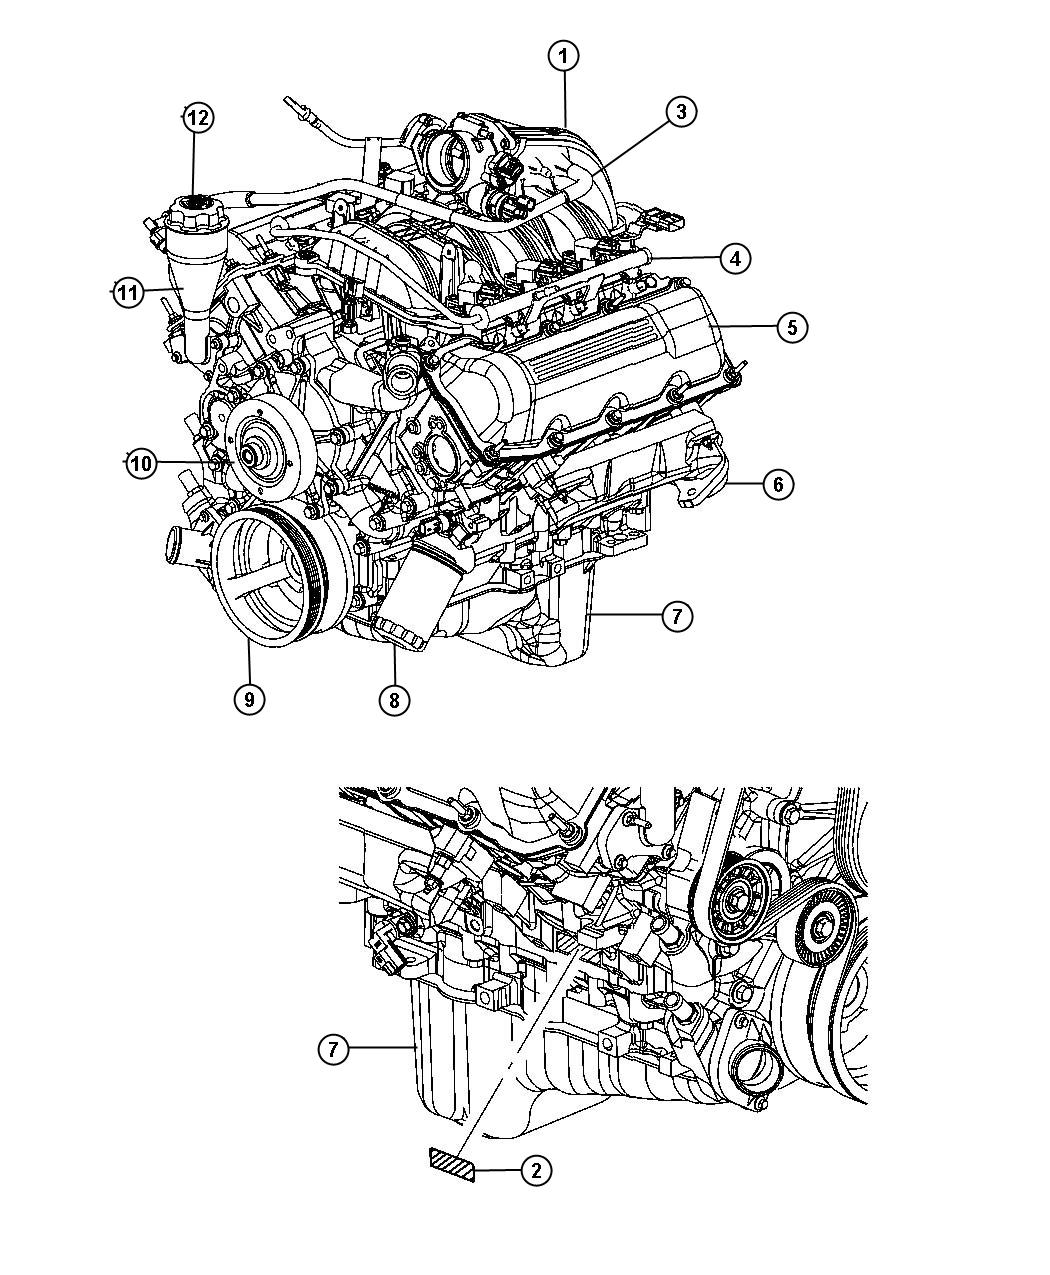 hight resolution of jeep liberty 3 7l engine diagram jeep auto wiring diagram 1997 toyota tacoma engine diagram chrysler 2 7l engine